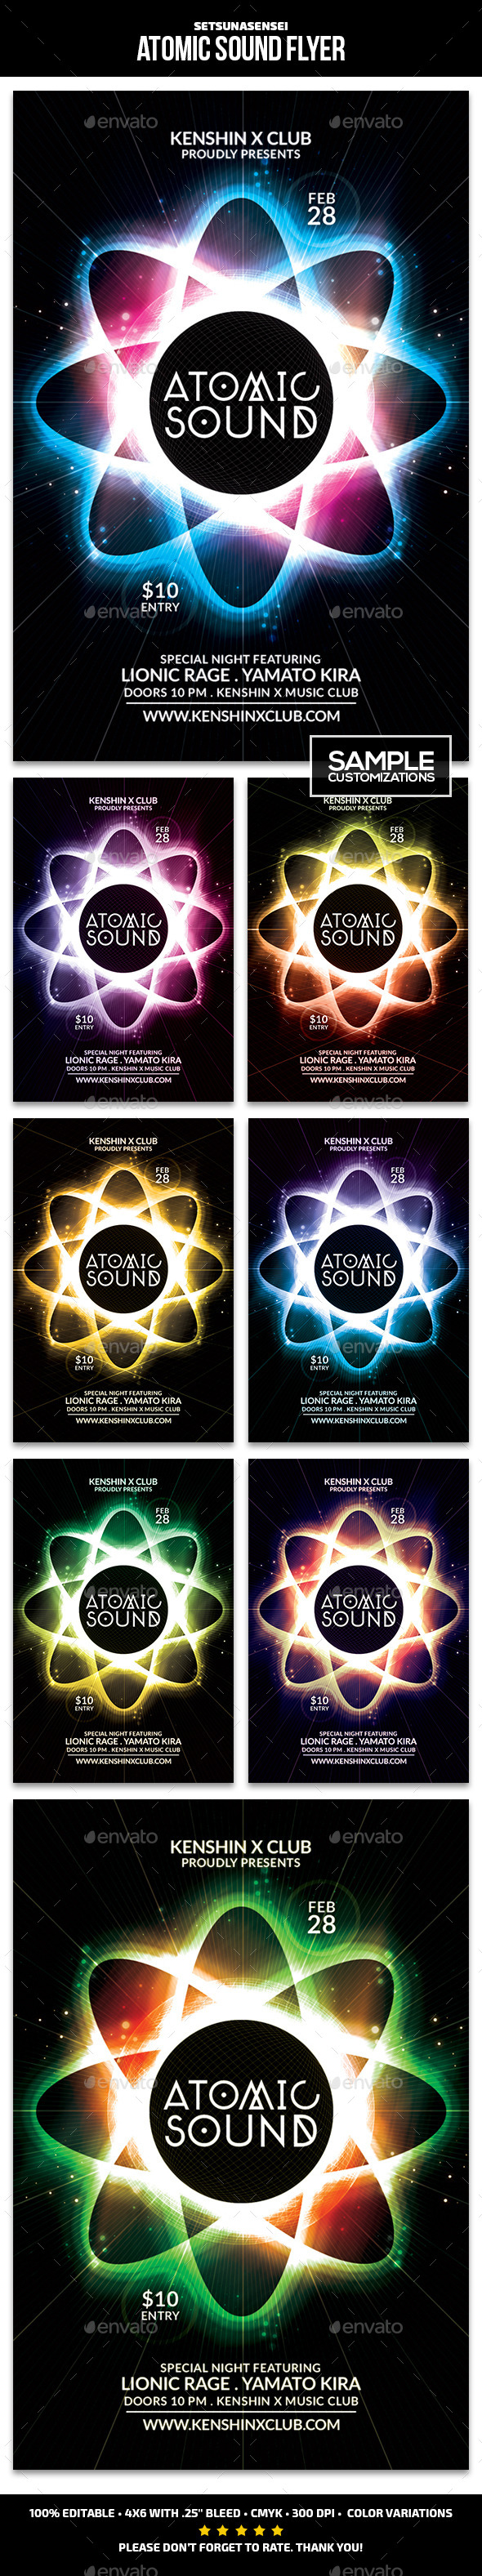 GraphicRiver Atomic Sound Flyer 9597880